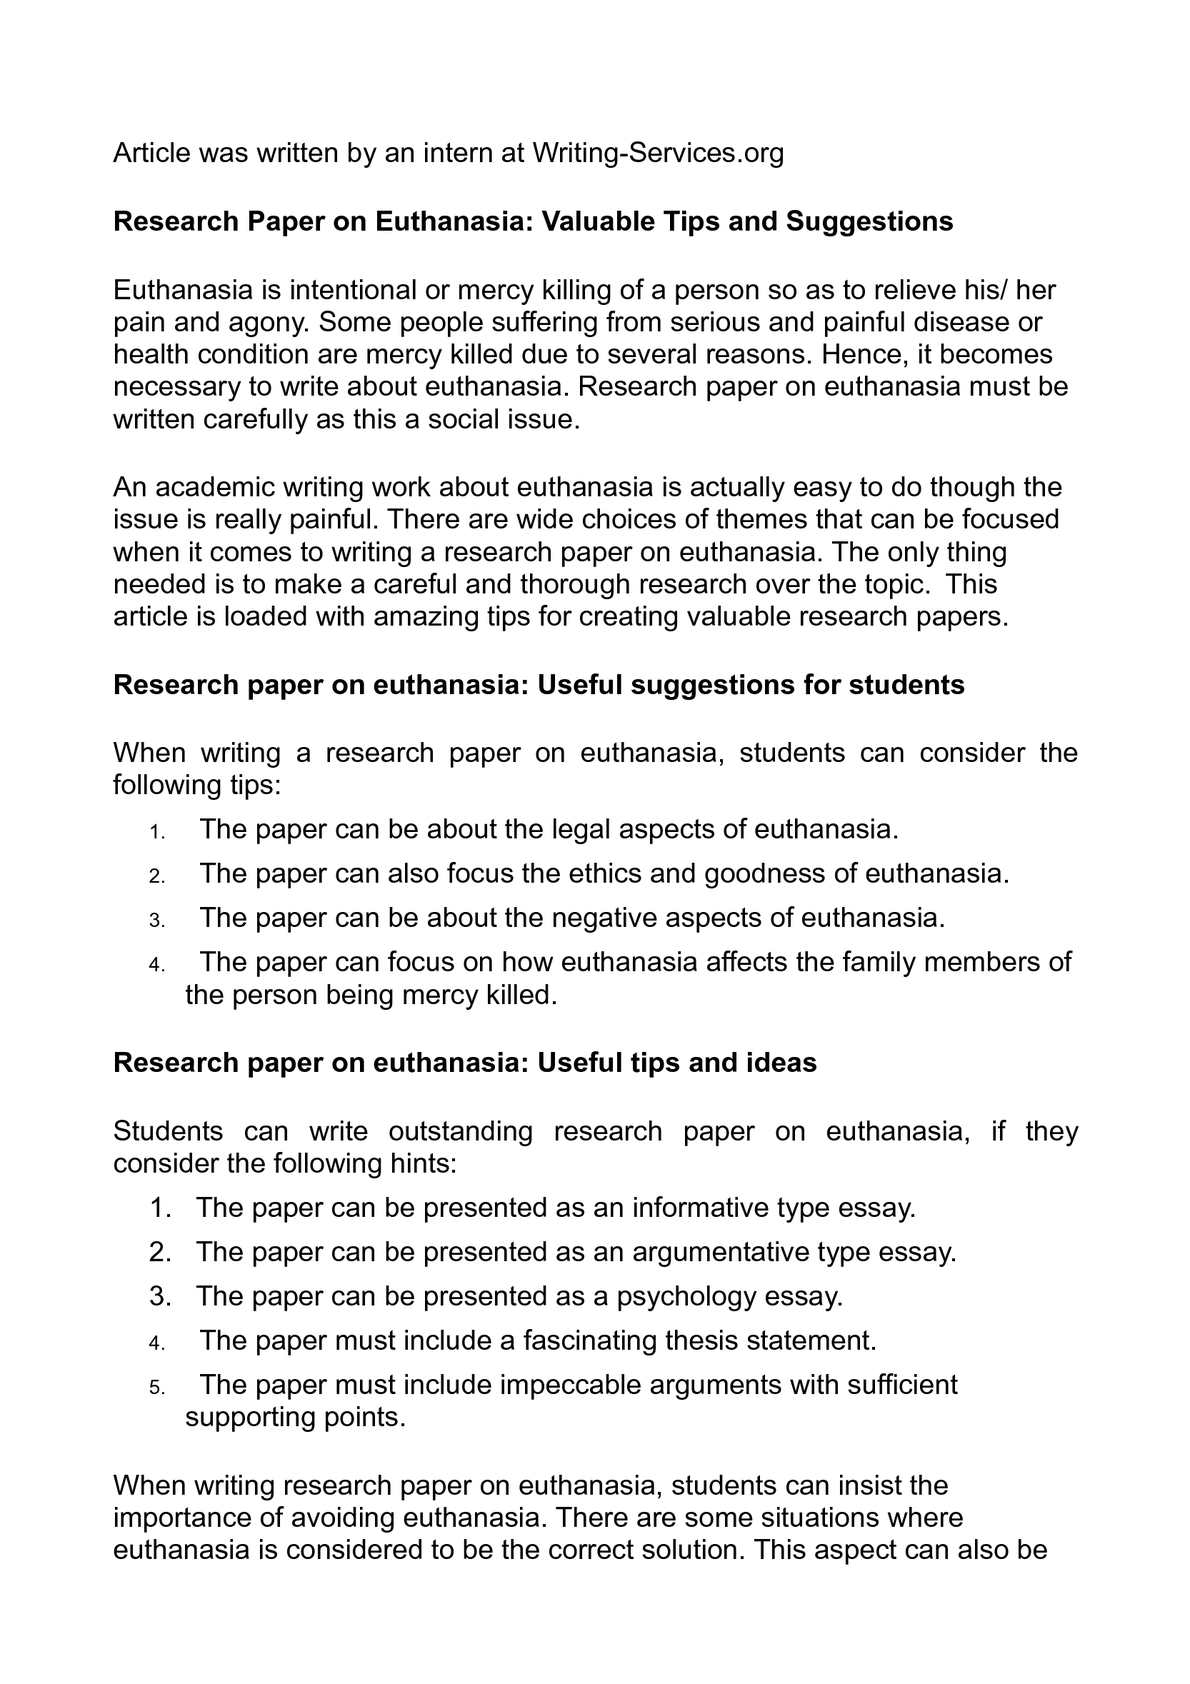 against euthanasia essay fight against euthanasia pro euthanasia  research on euthanasia research papers on euthanasia harvard college application essay research papers on euthanasia harvard